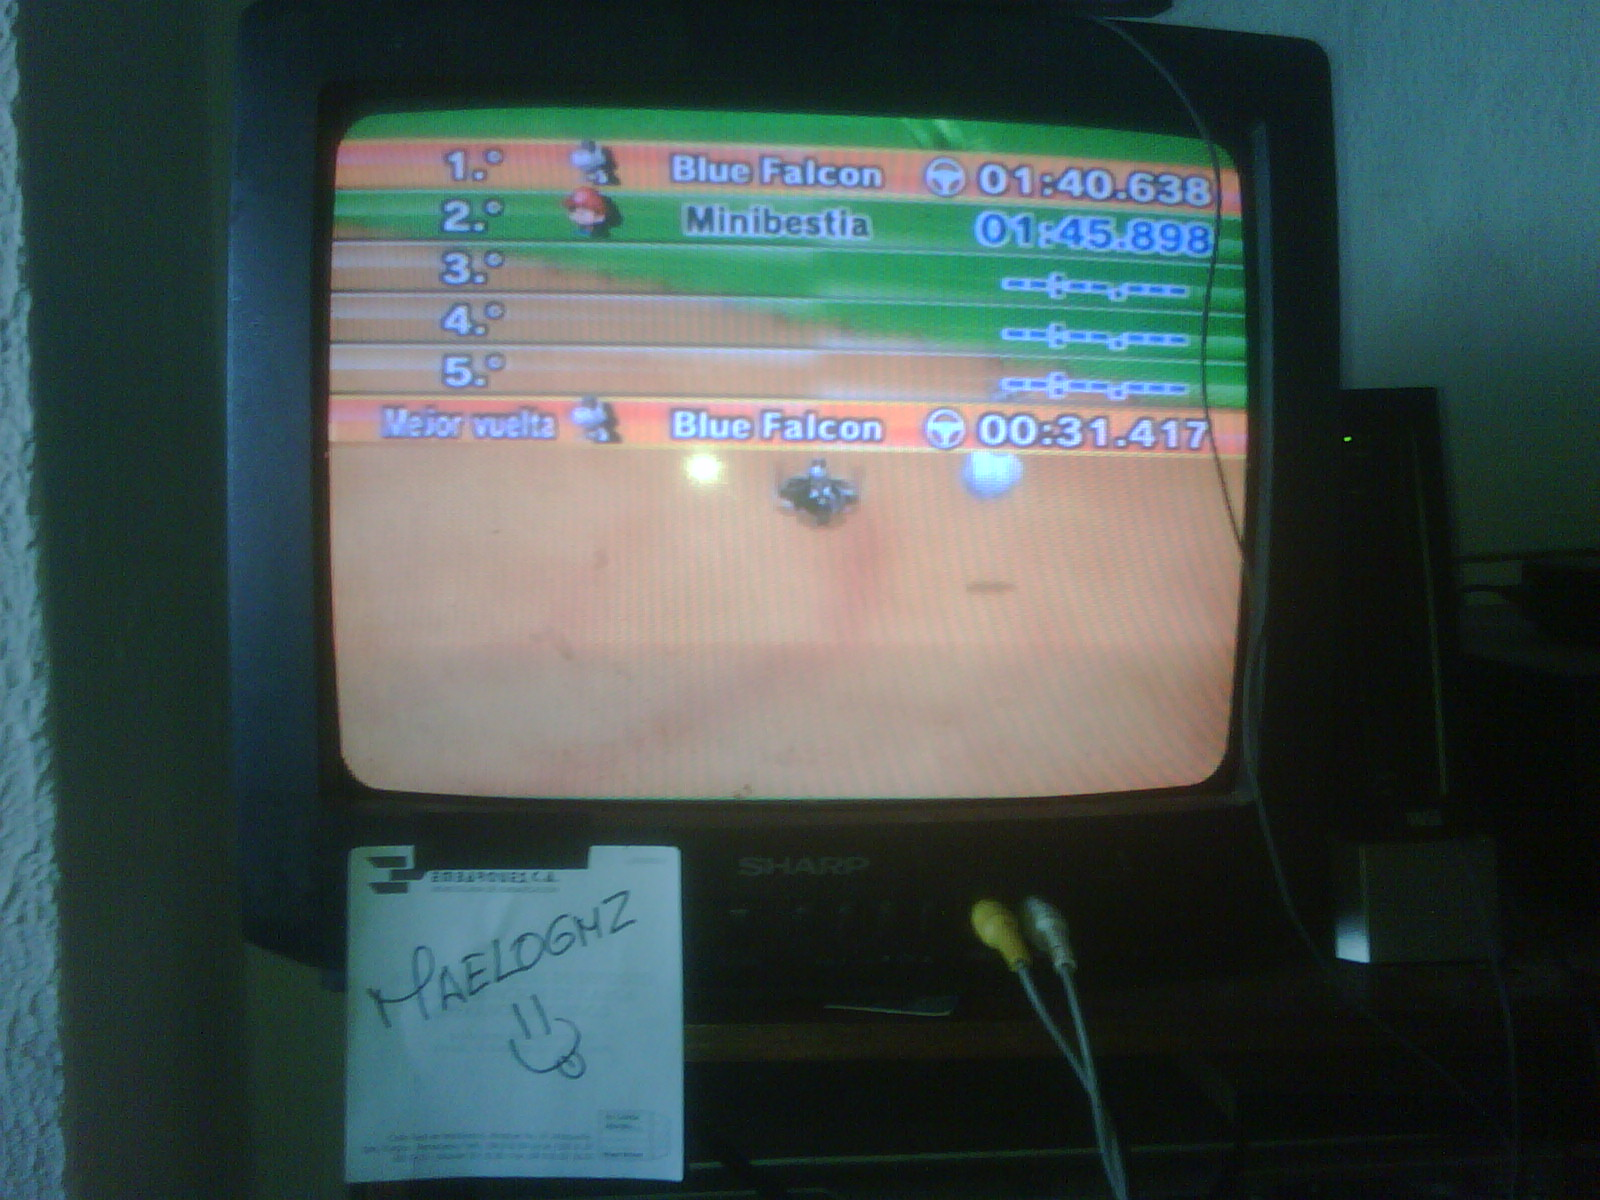 Mario Kart Wii: Time Trials: Moo Moo Meadows [Best Time] time of 0:01:40.638